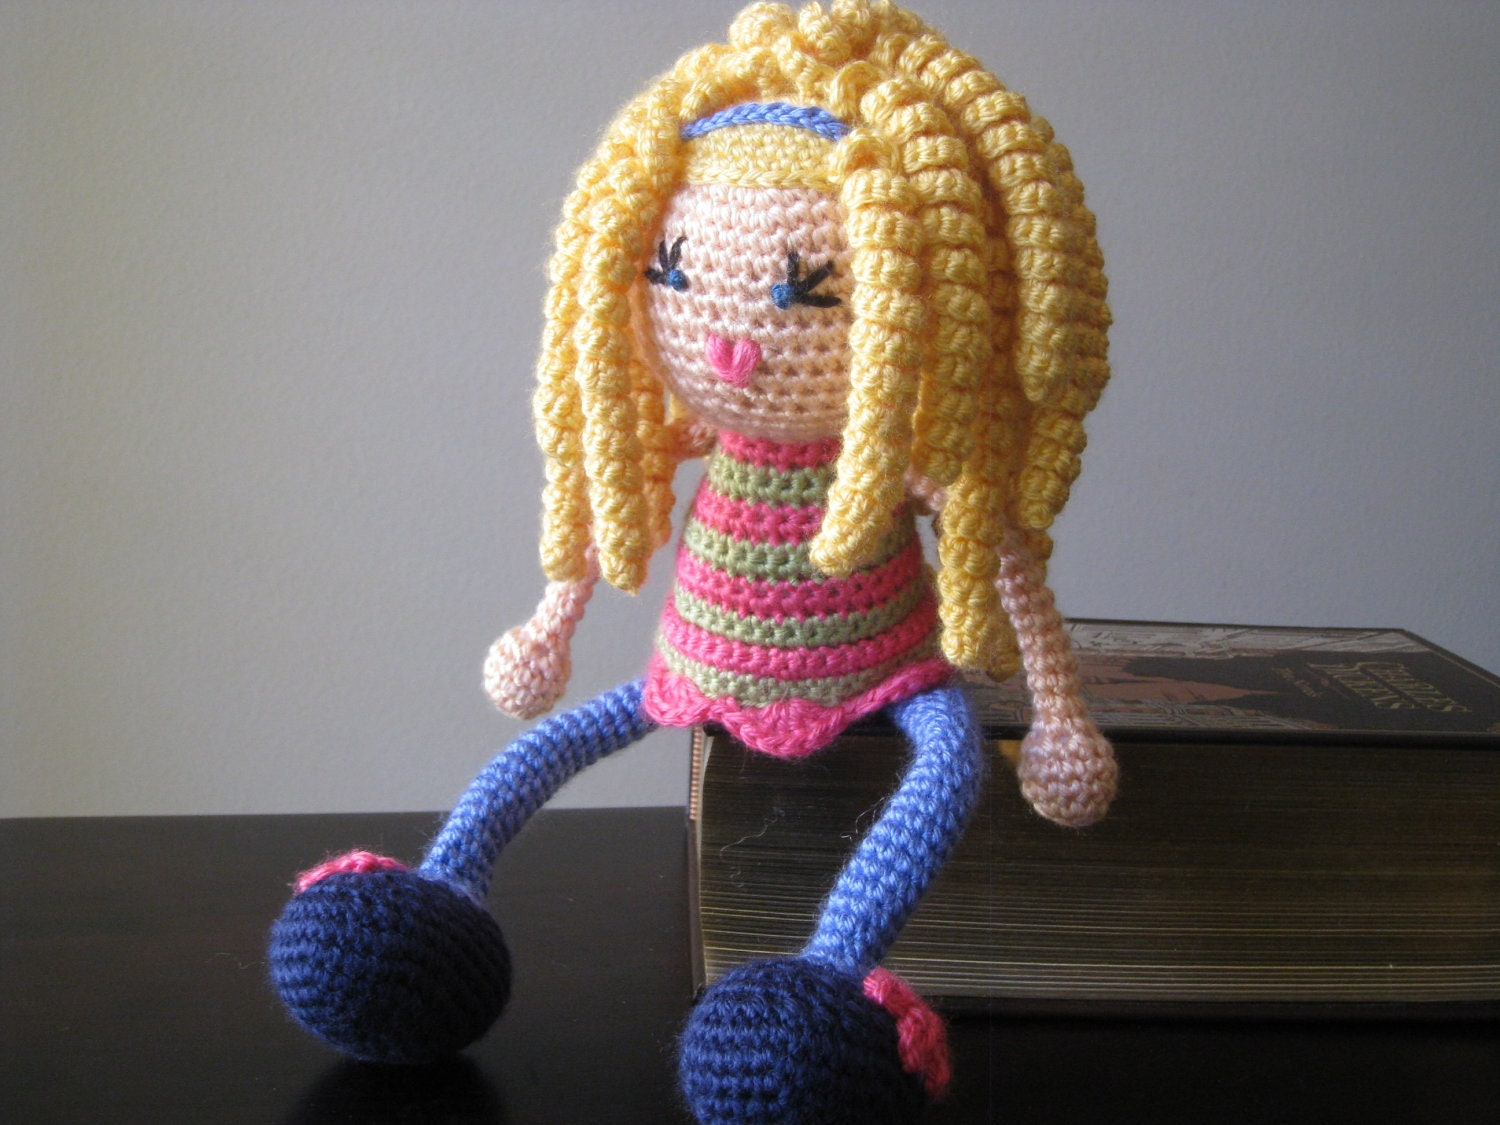 Amigurumi Curly Doll : Crochet pattern blond curly haired doll plush by leengreenbean